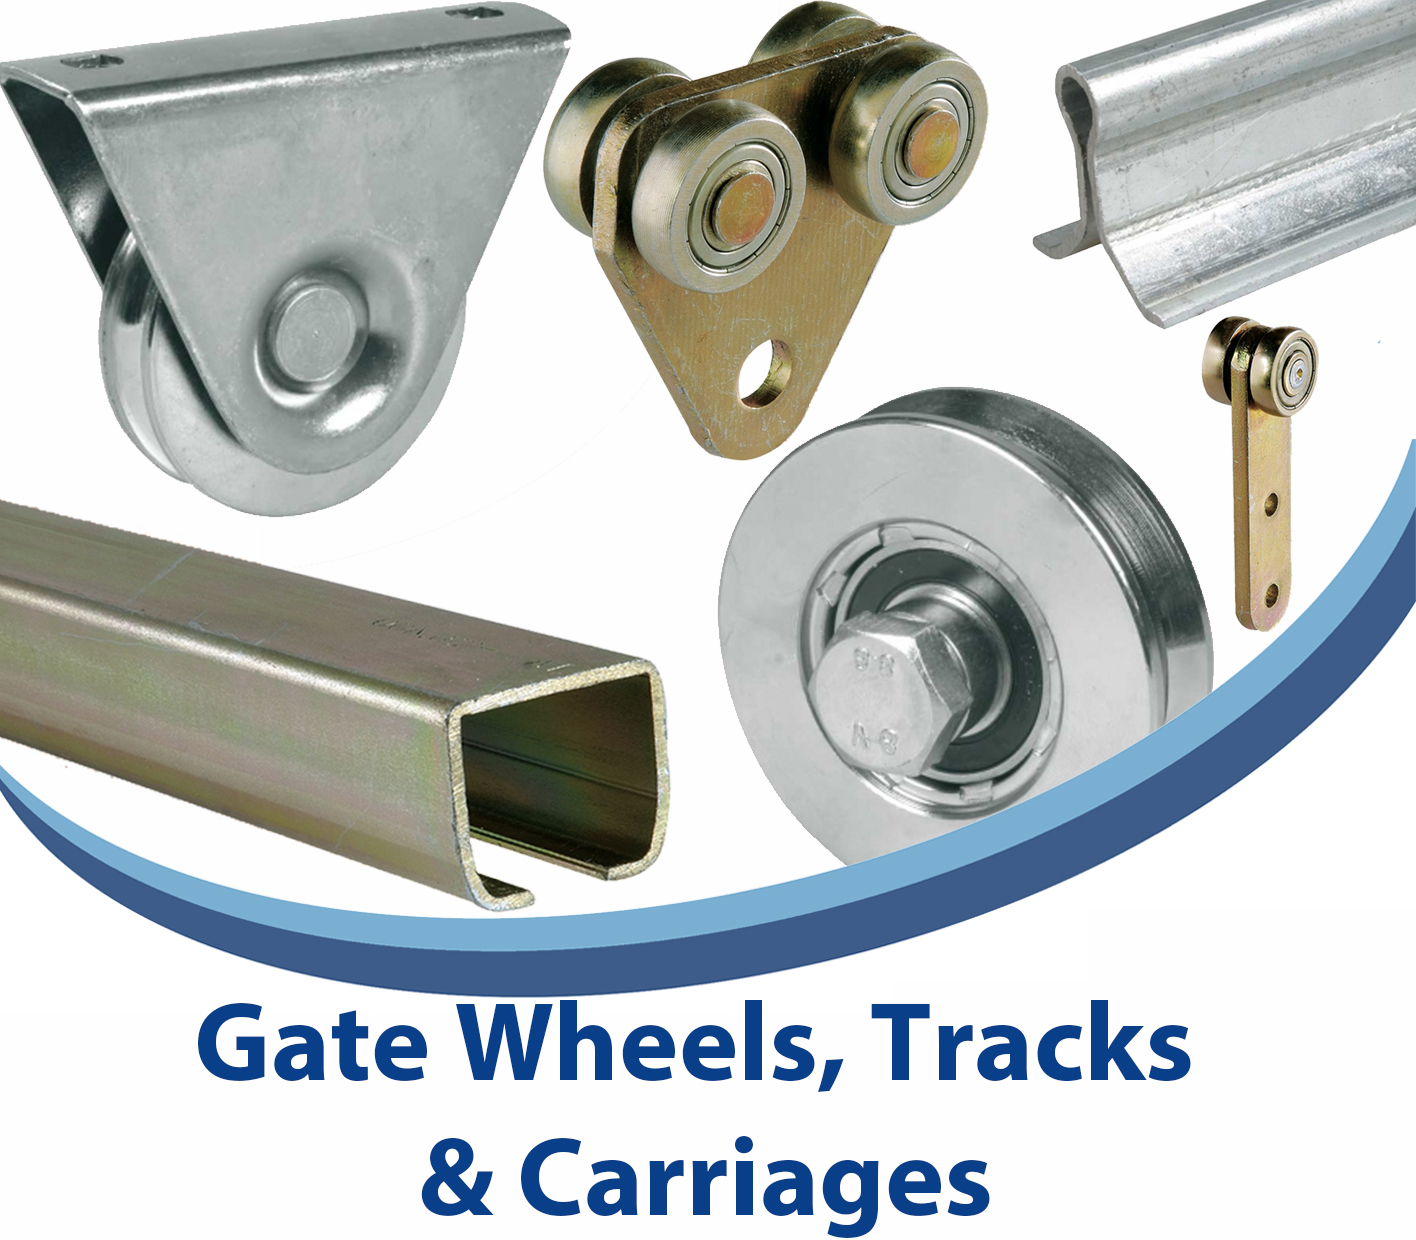 Gate Wheels, Tracks & Carriages